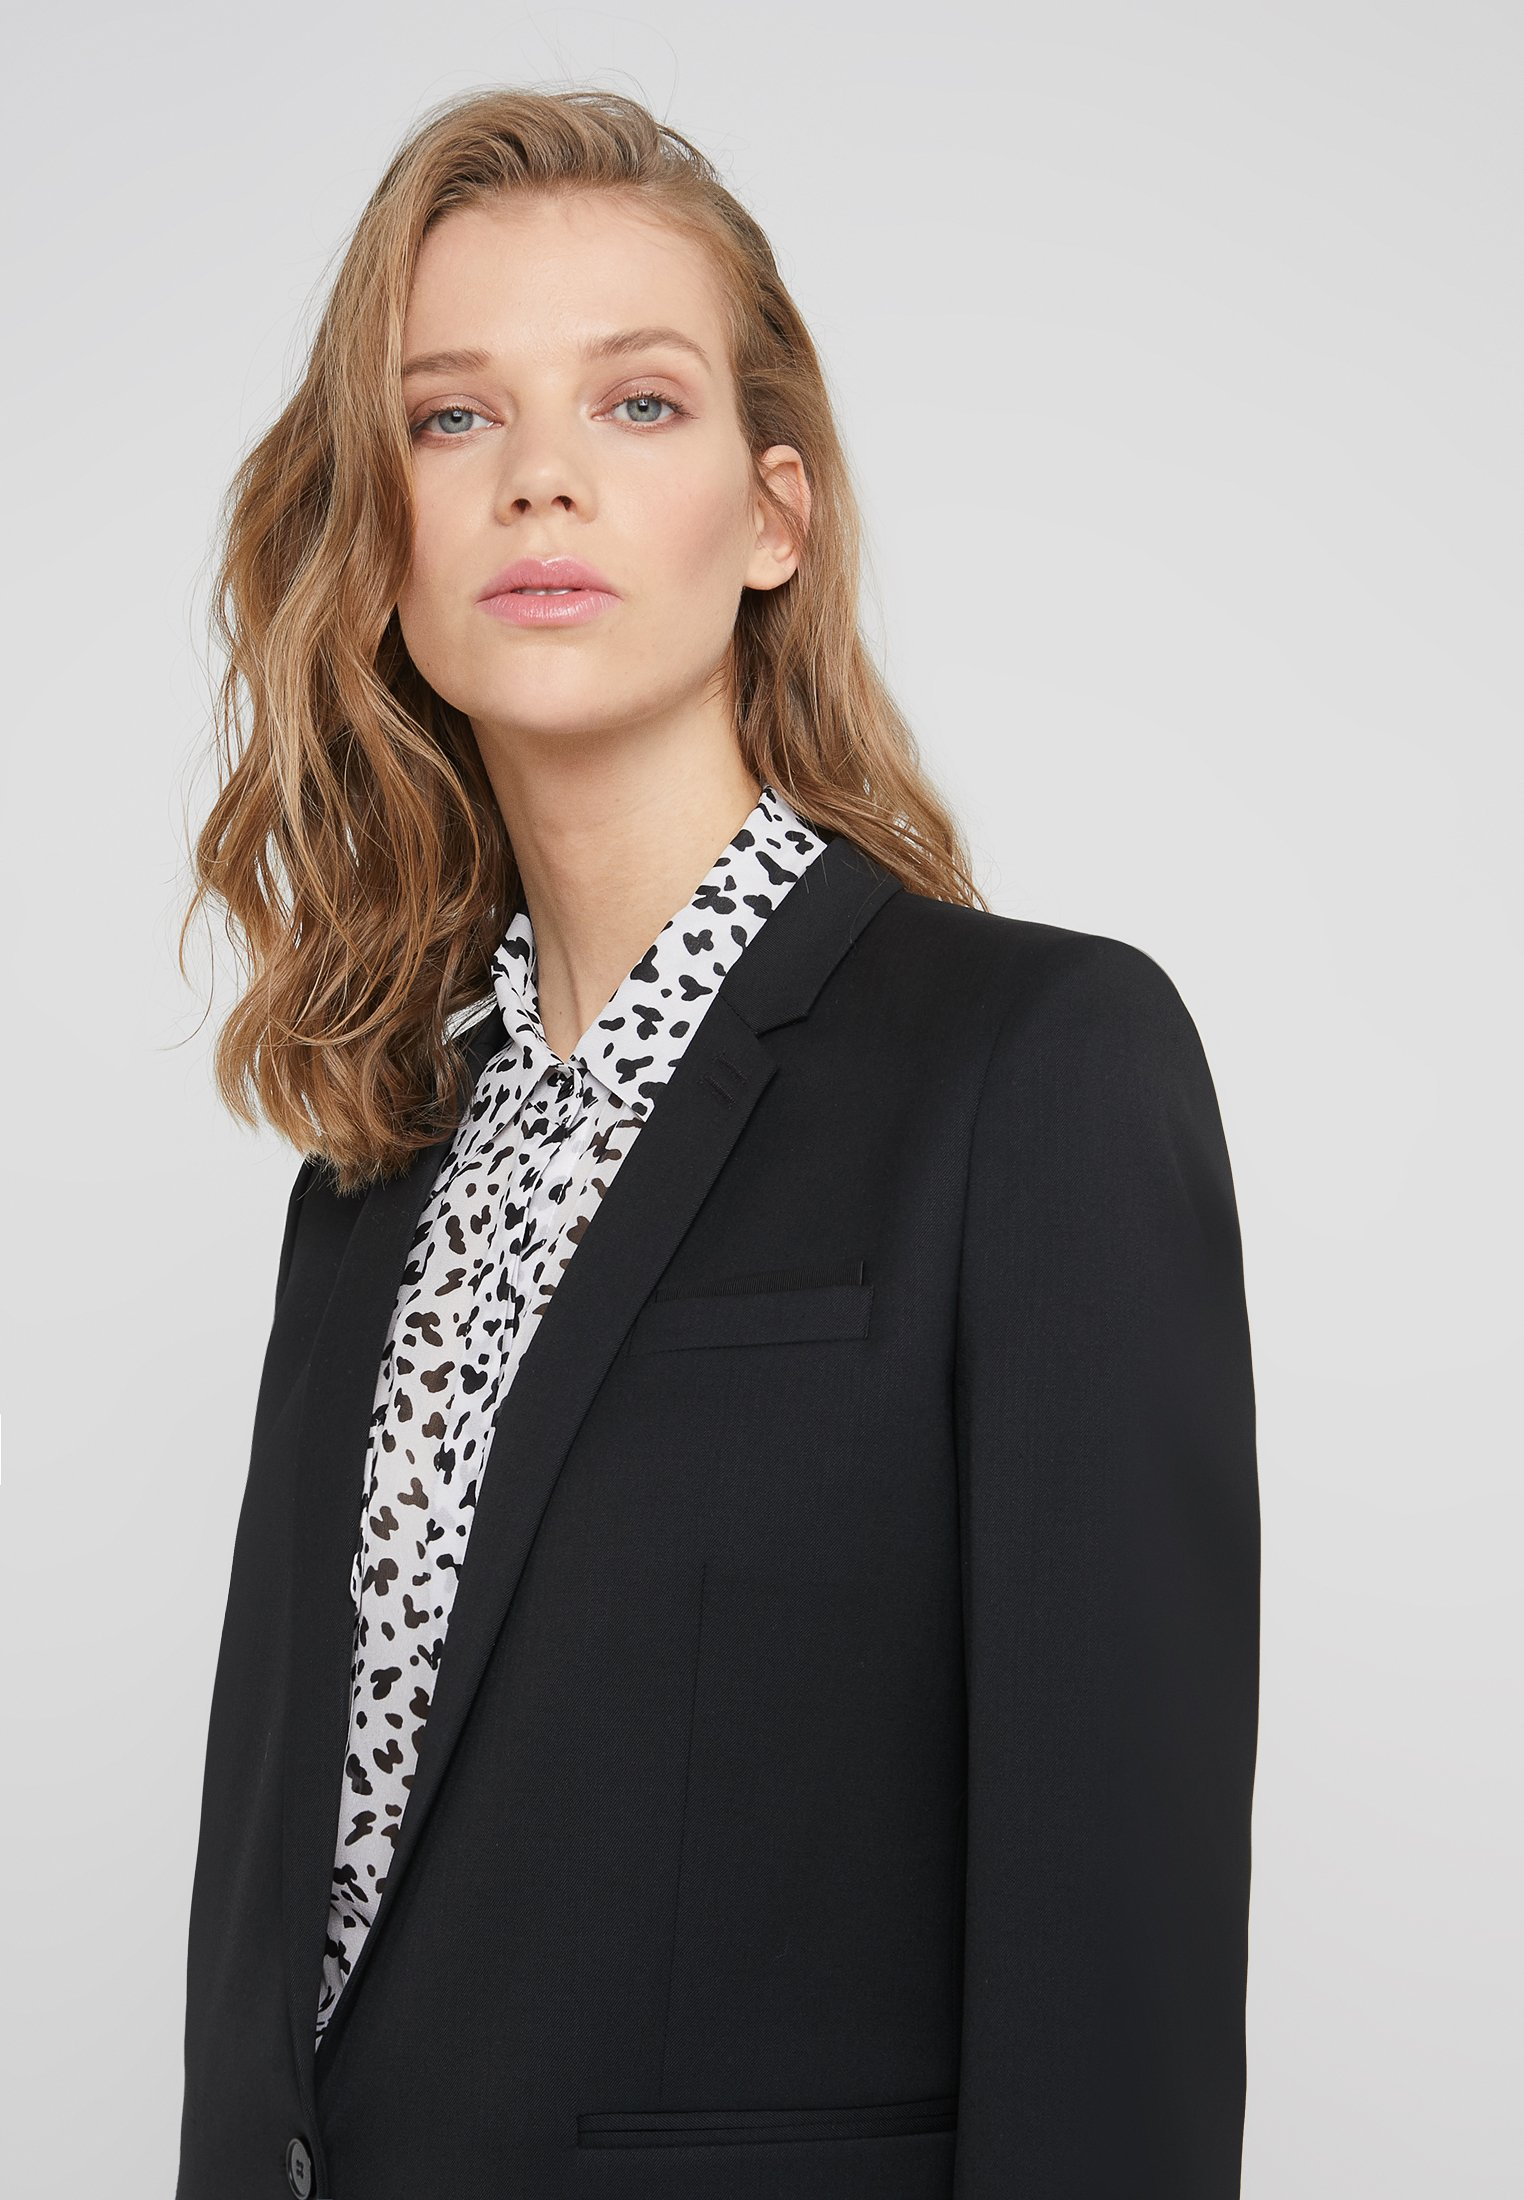 Adviseren Opruiming The Kooples Blazer - black -  9wtIC